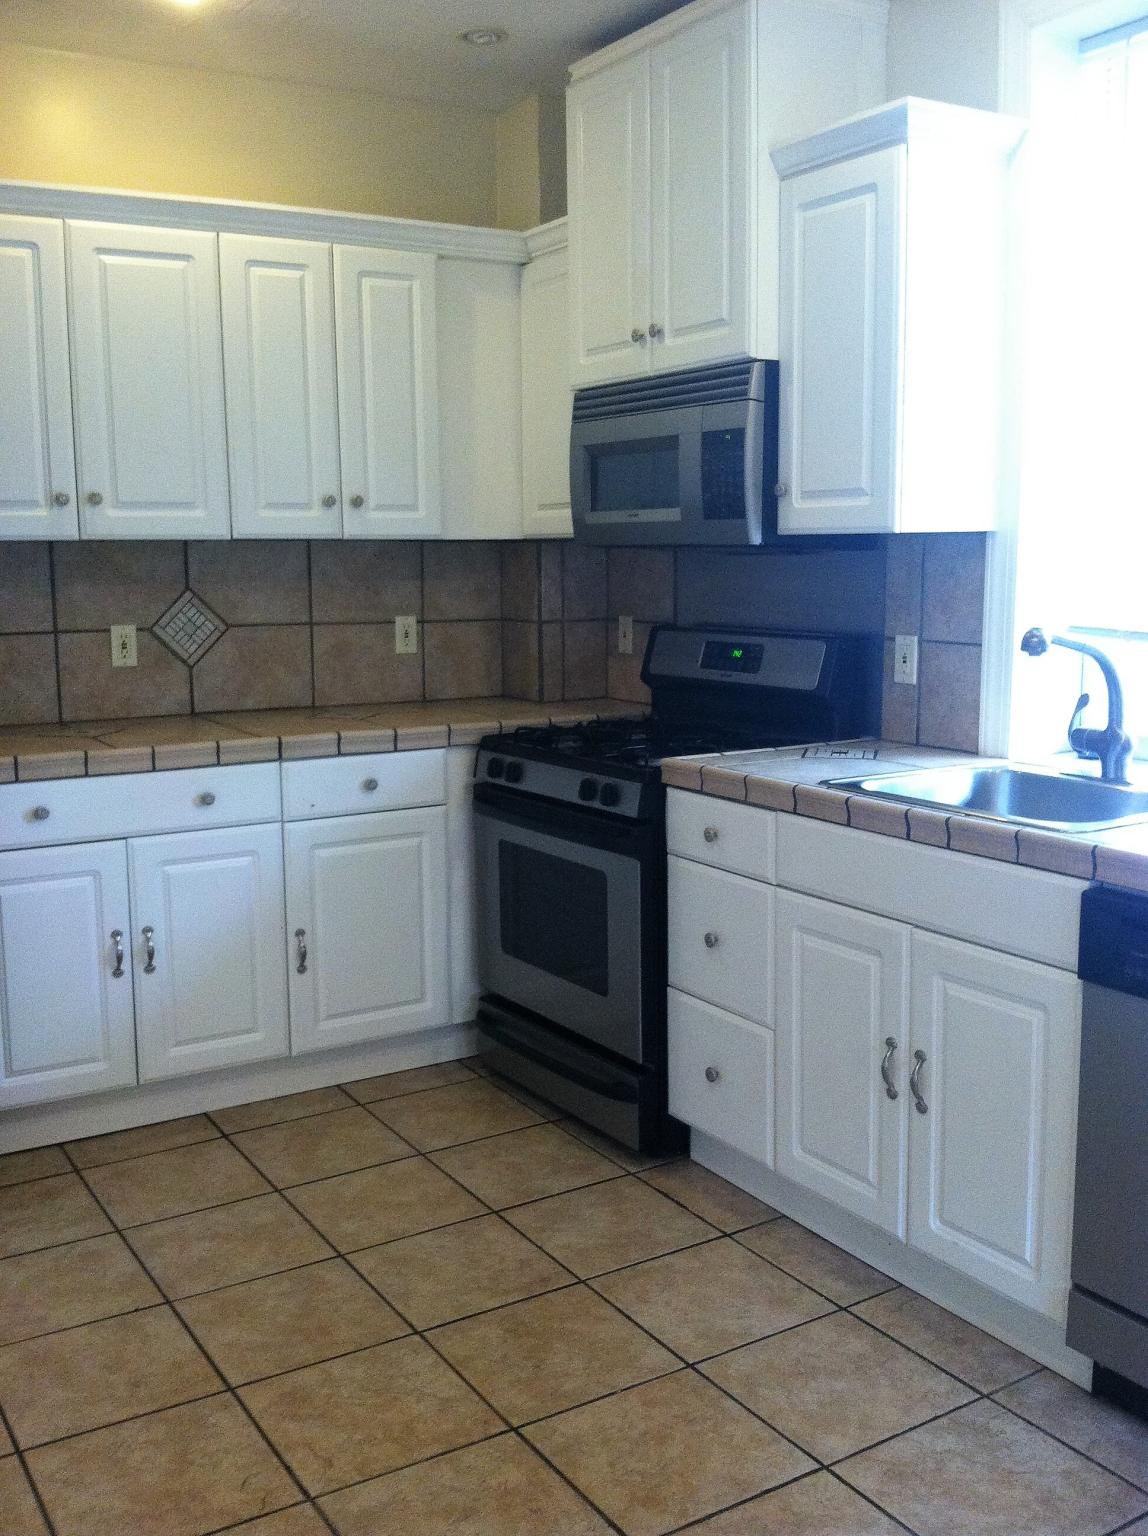 350 Ophelia St For Rent - Pittsburgh, PA | Trulia